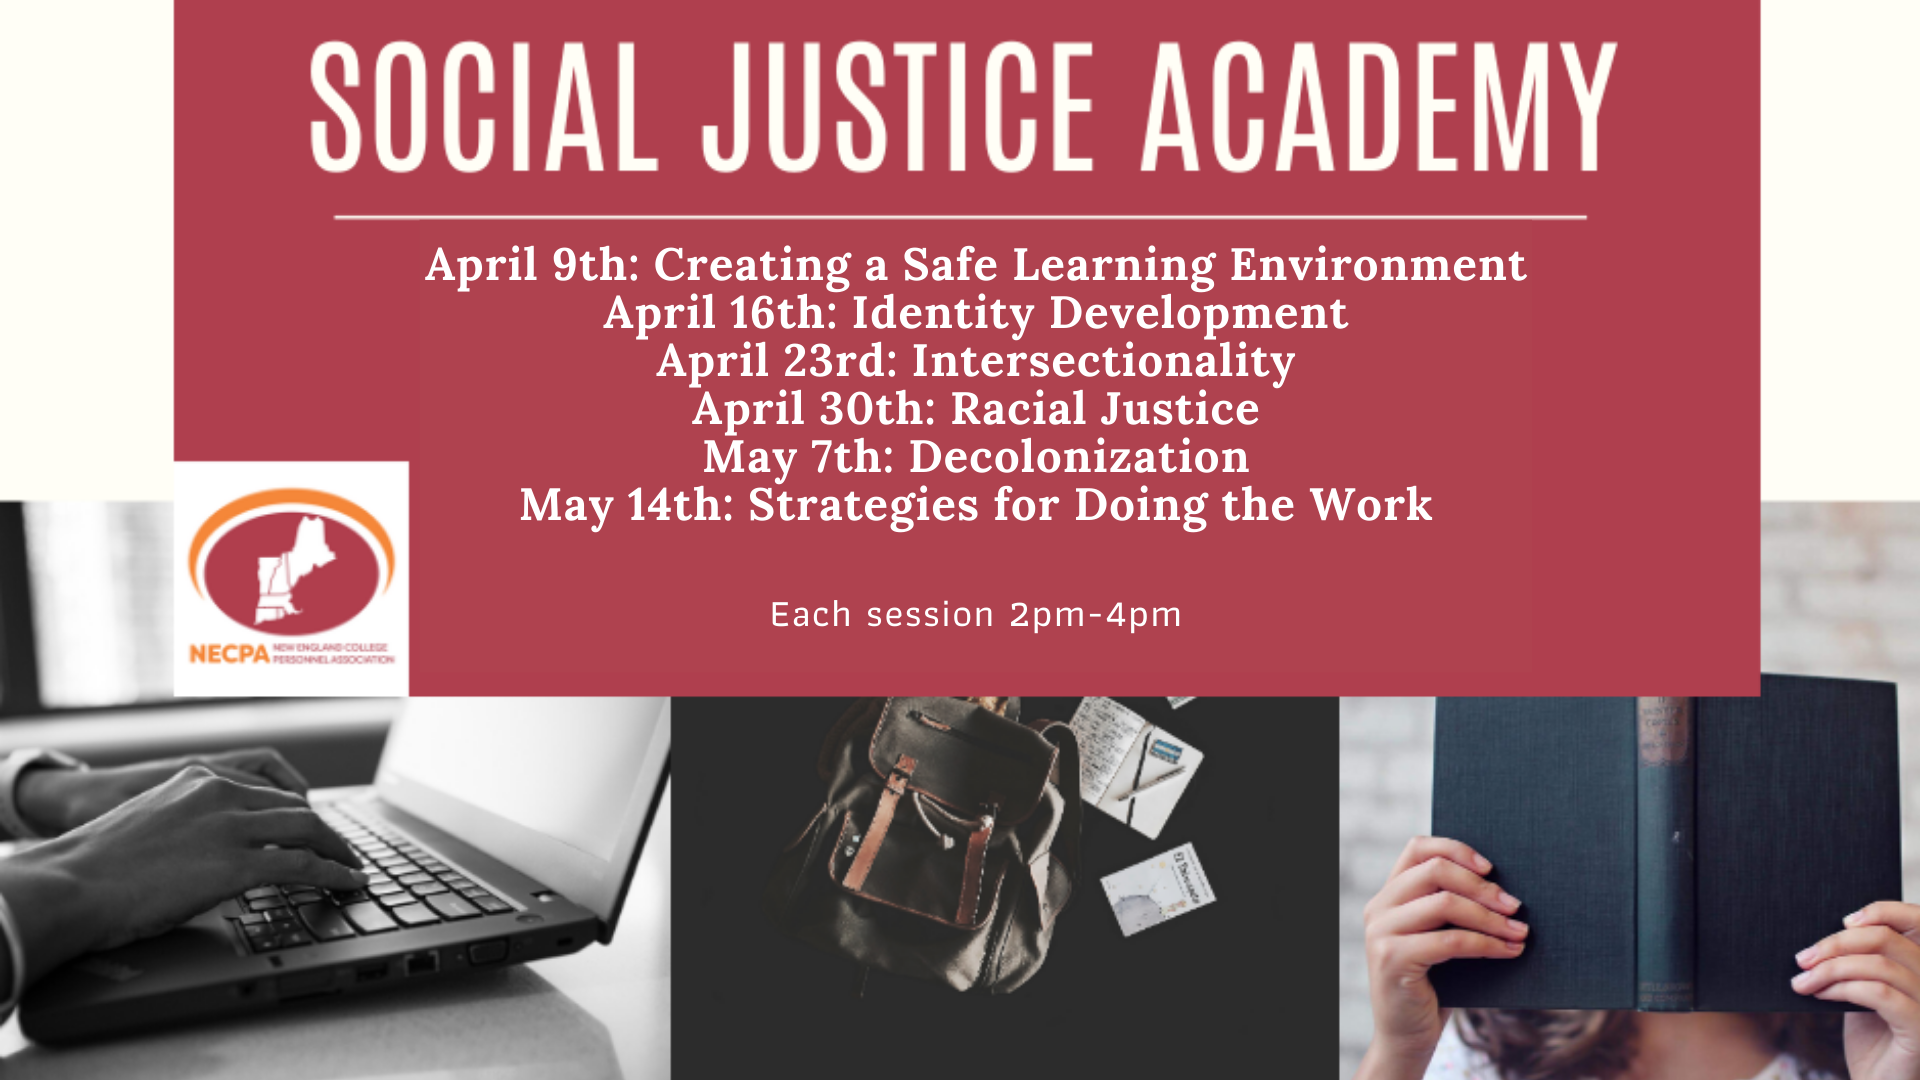 Social Justice Academy flier showing upcoming sessions on creating a safe learning environment, identity development, intersectionality, racial justice, decolonization, and strategies for the doing the work